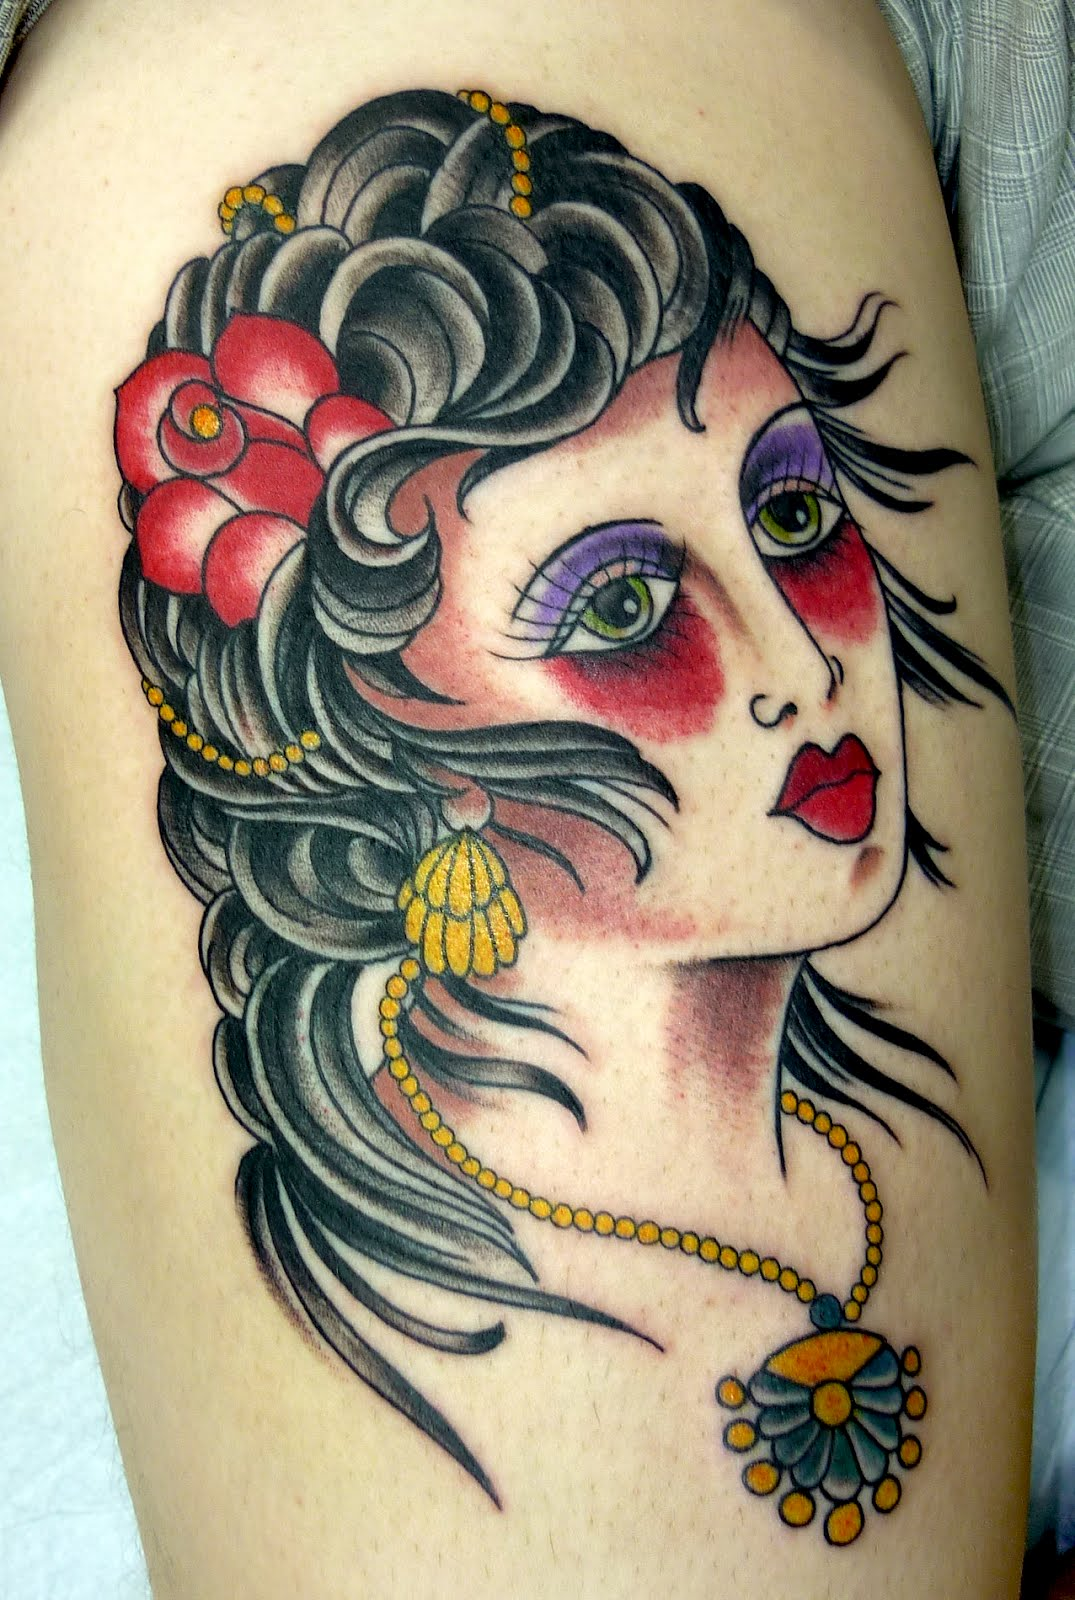 Gypsy Tattoos Designs Ideas And Meaning Tattoos For You Ideas And Designs